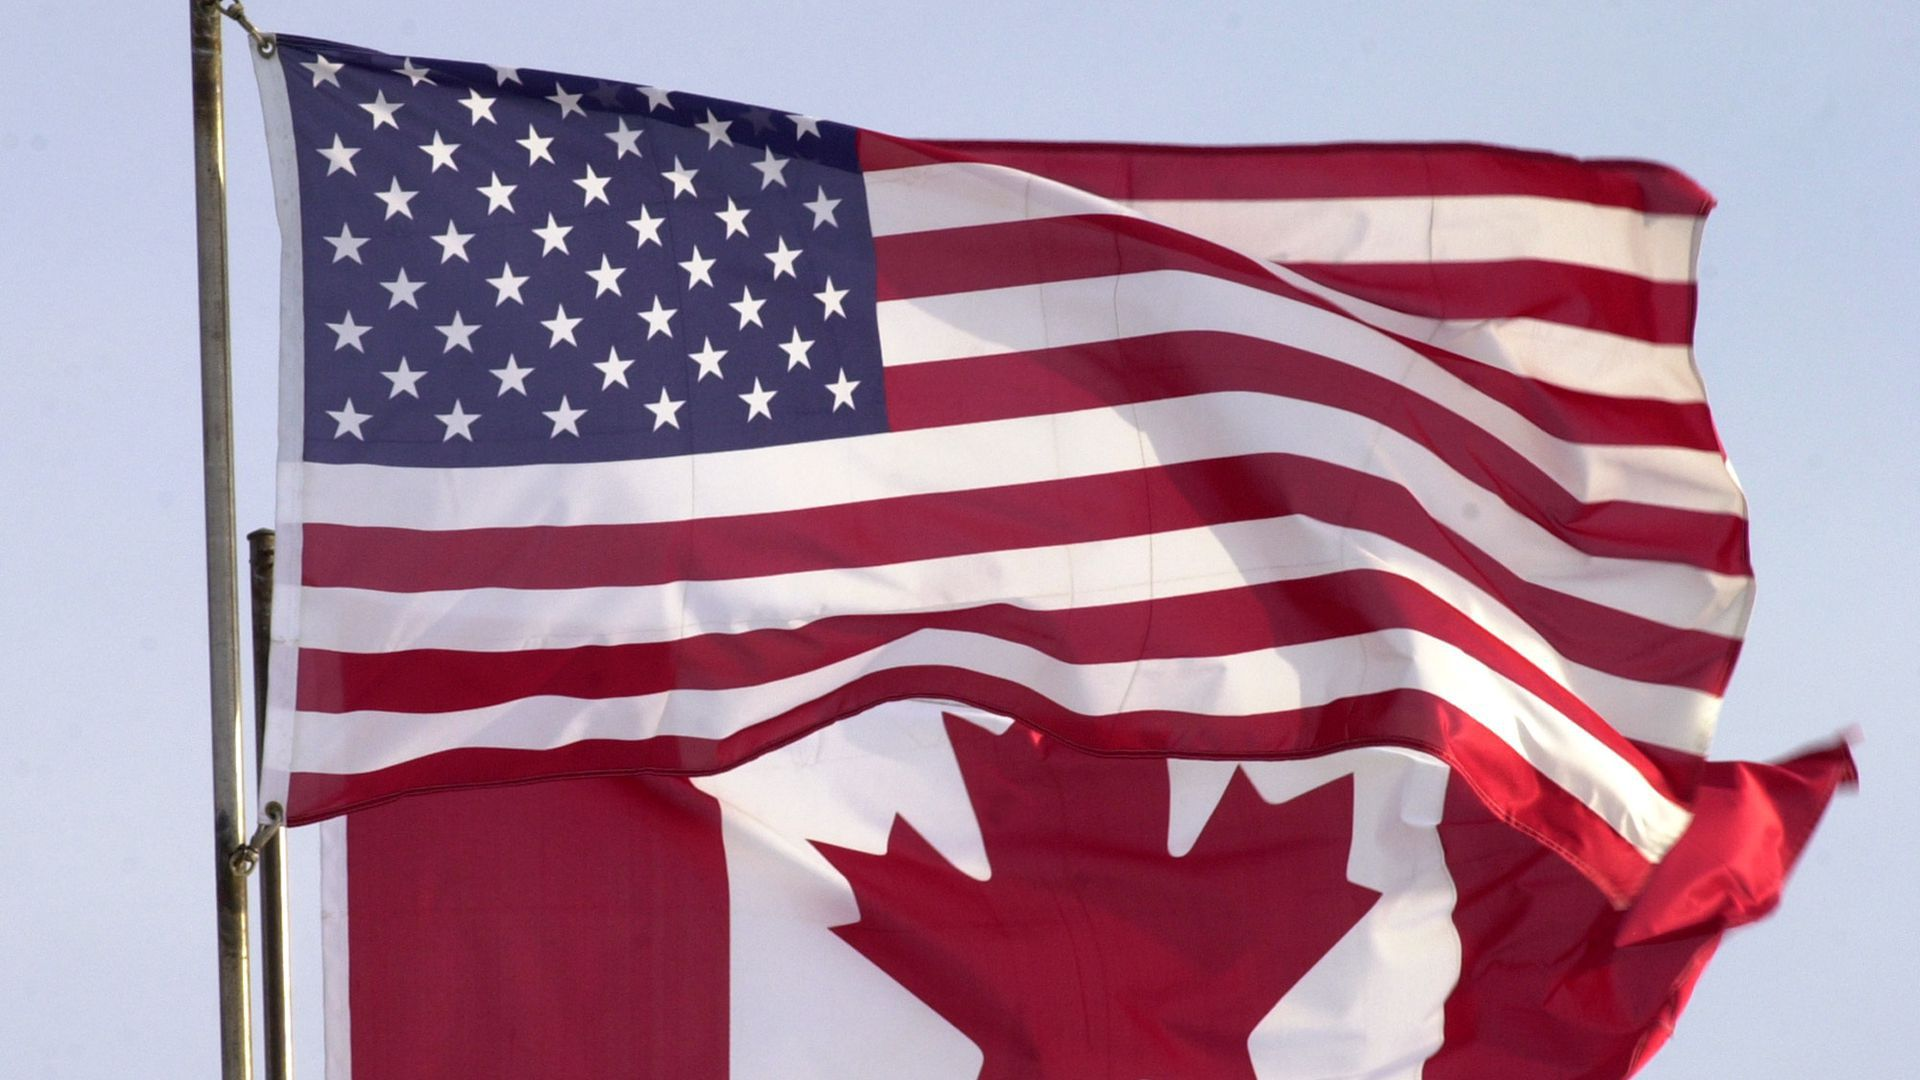 A photo of the Canadian flag flying behind the U.S. flag.